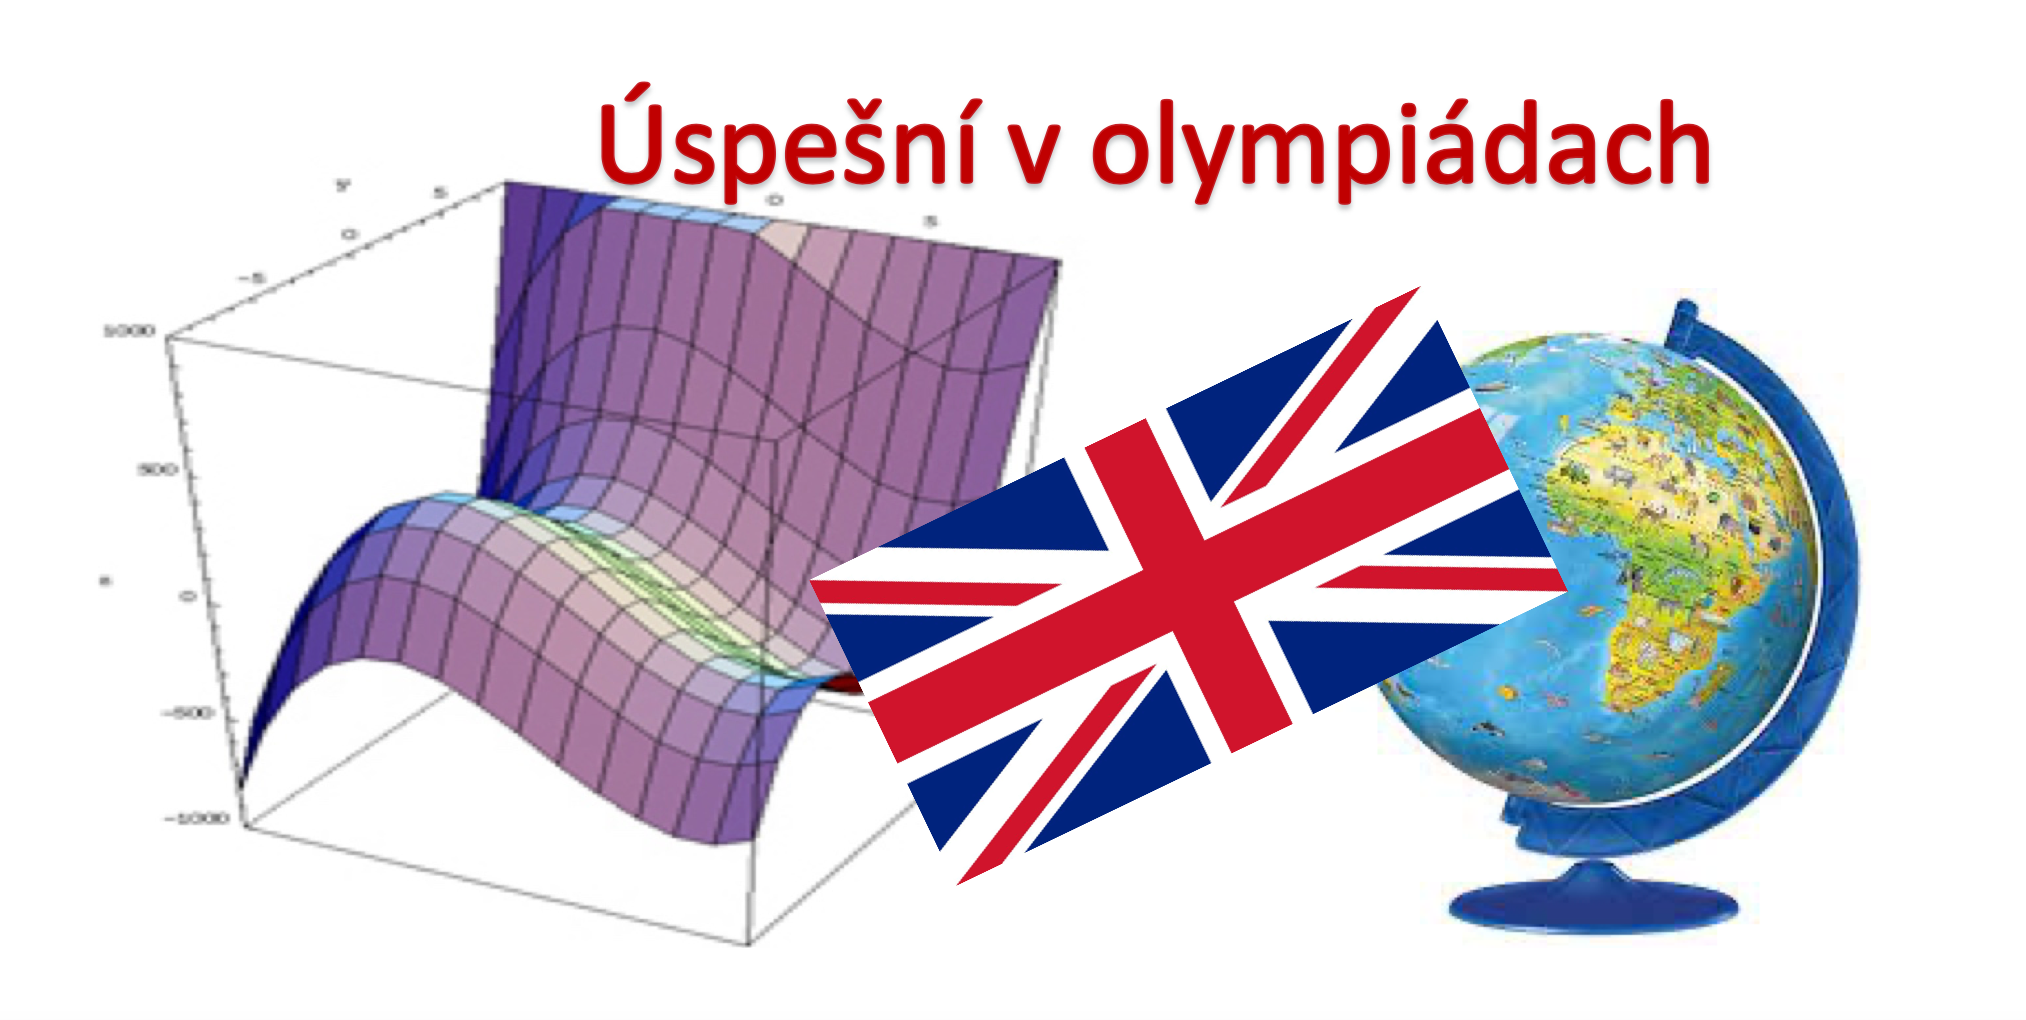 20210402105210_olympiady2021.png